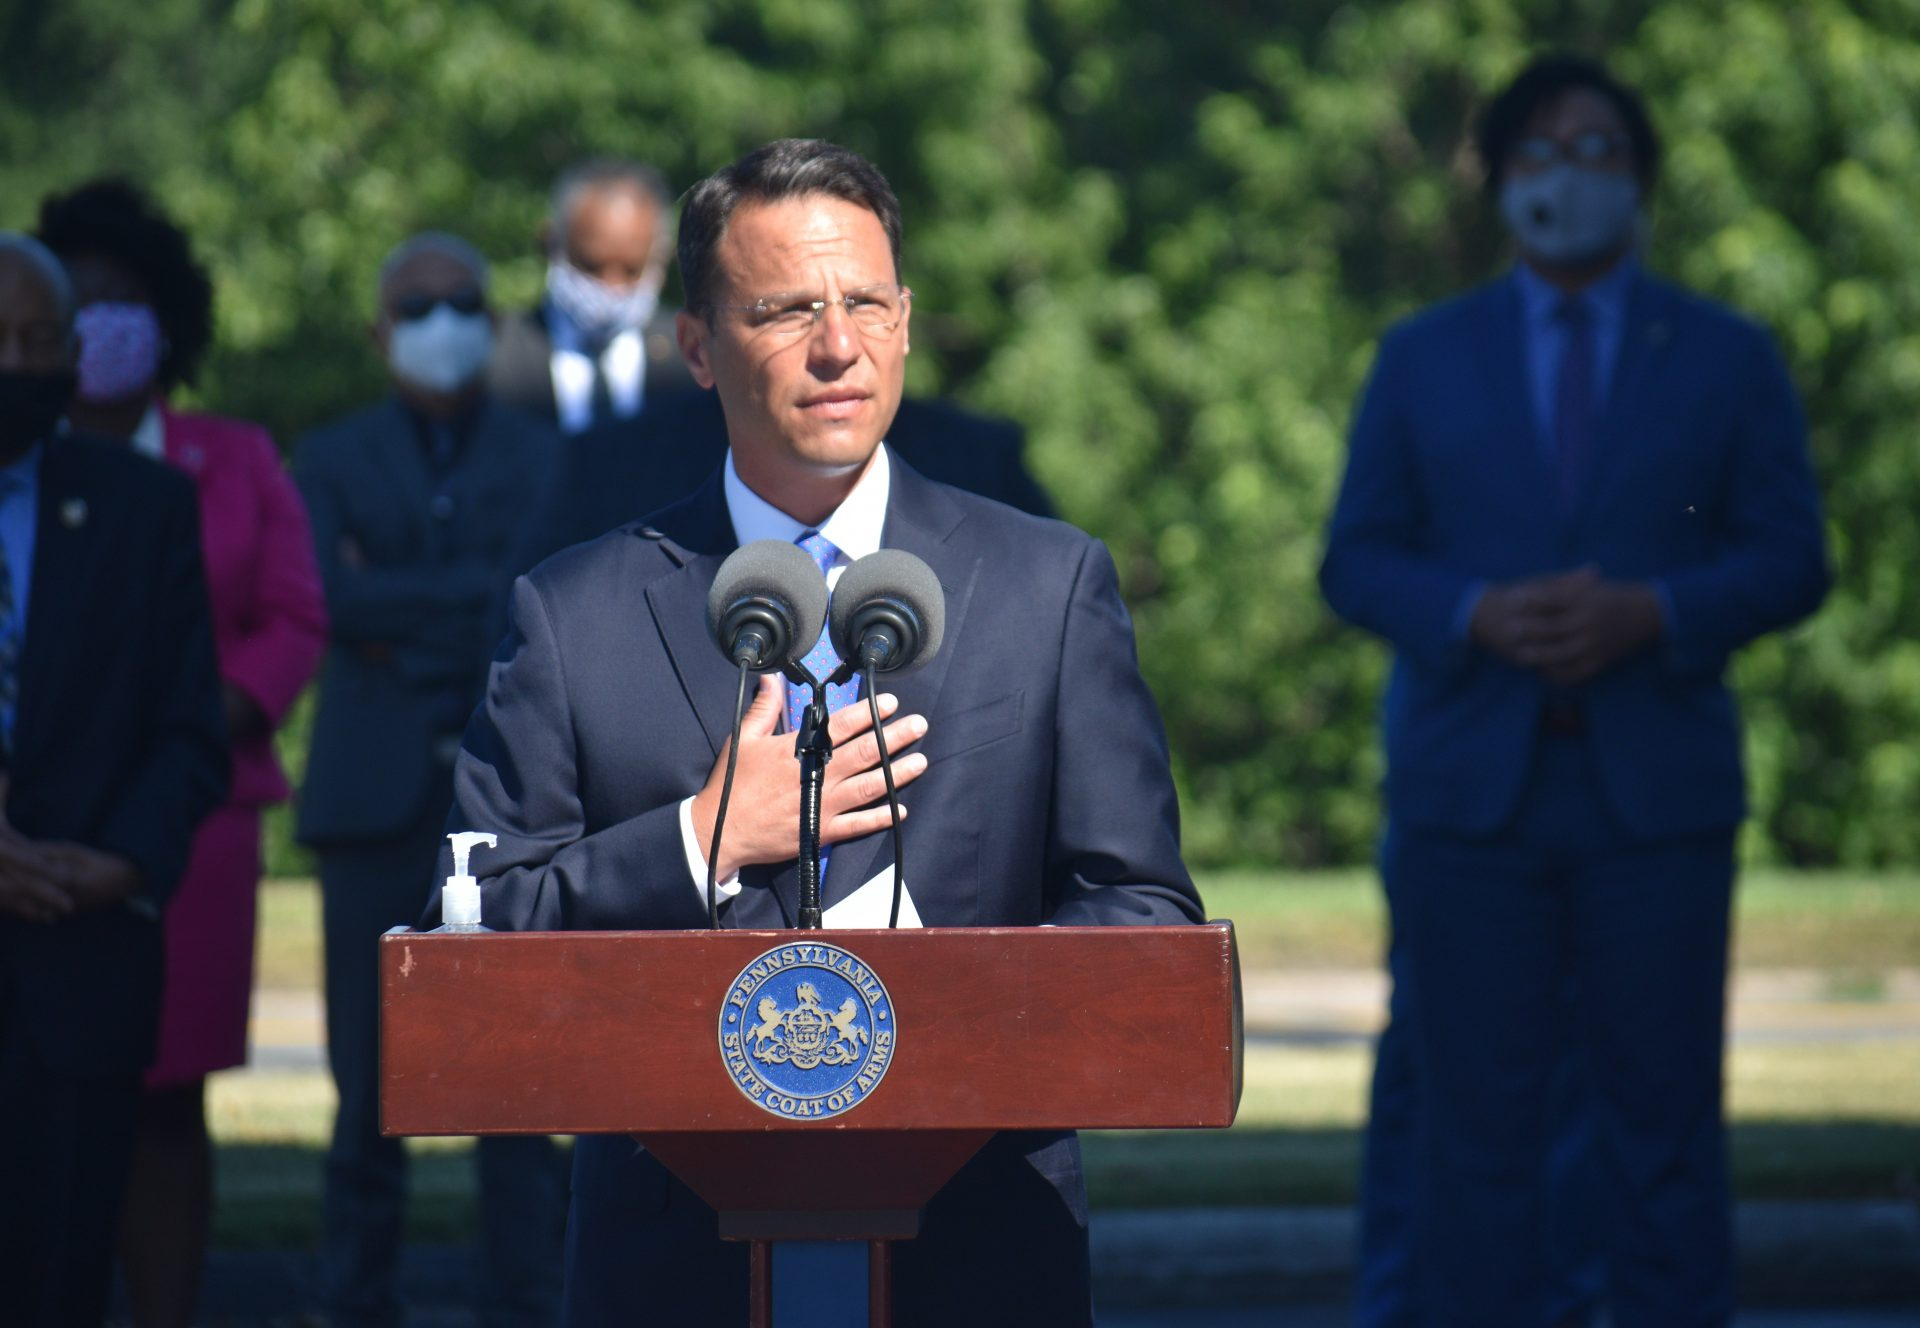 Attorney General Josh Shapiro speaks at a news conference on July 14, 2020.